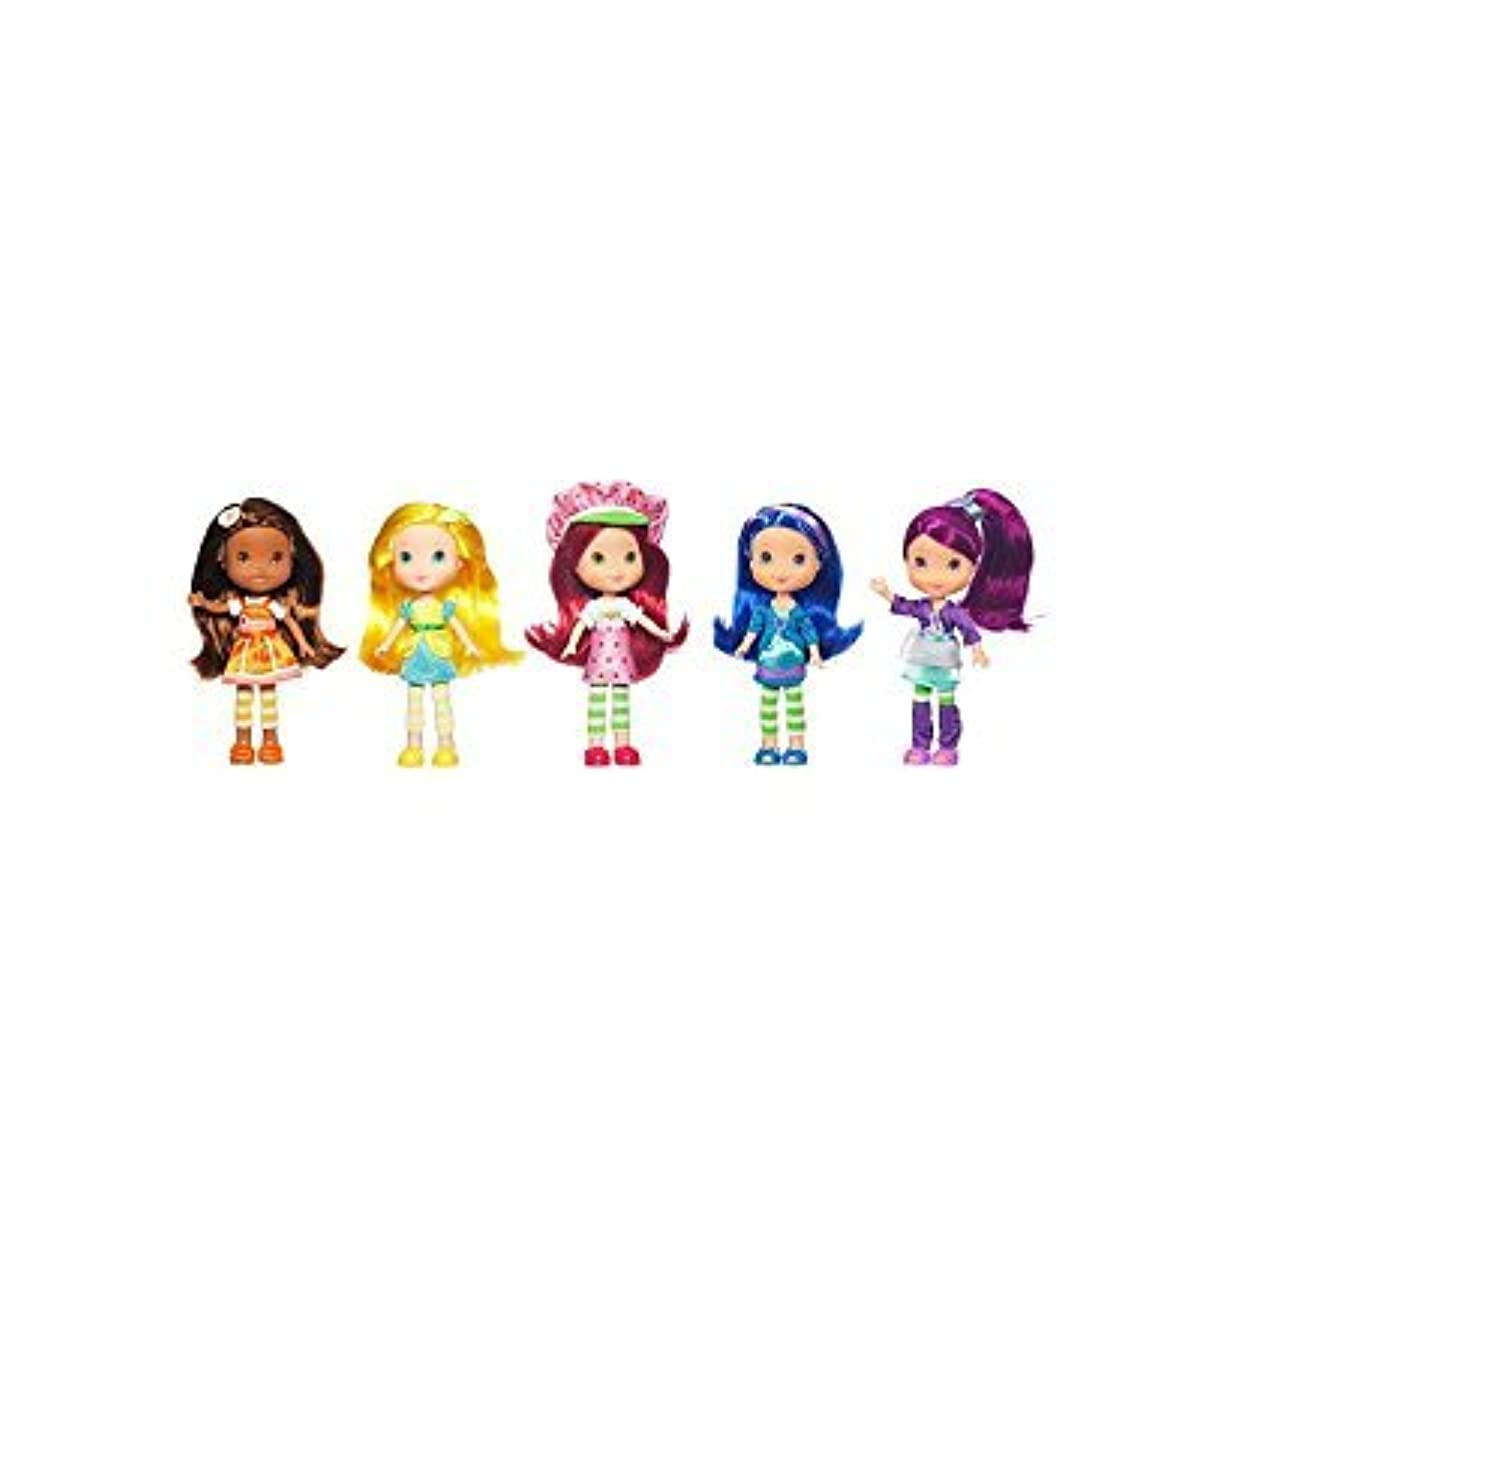 Hasbro Strawberry Shortcake Berry Best Collection Doll Set 7 Inches 5-Pack [並行輸入品]